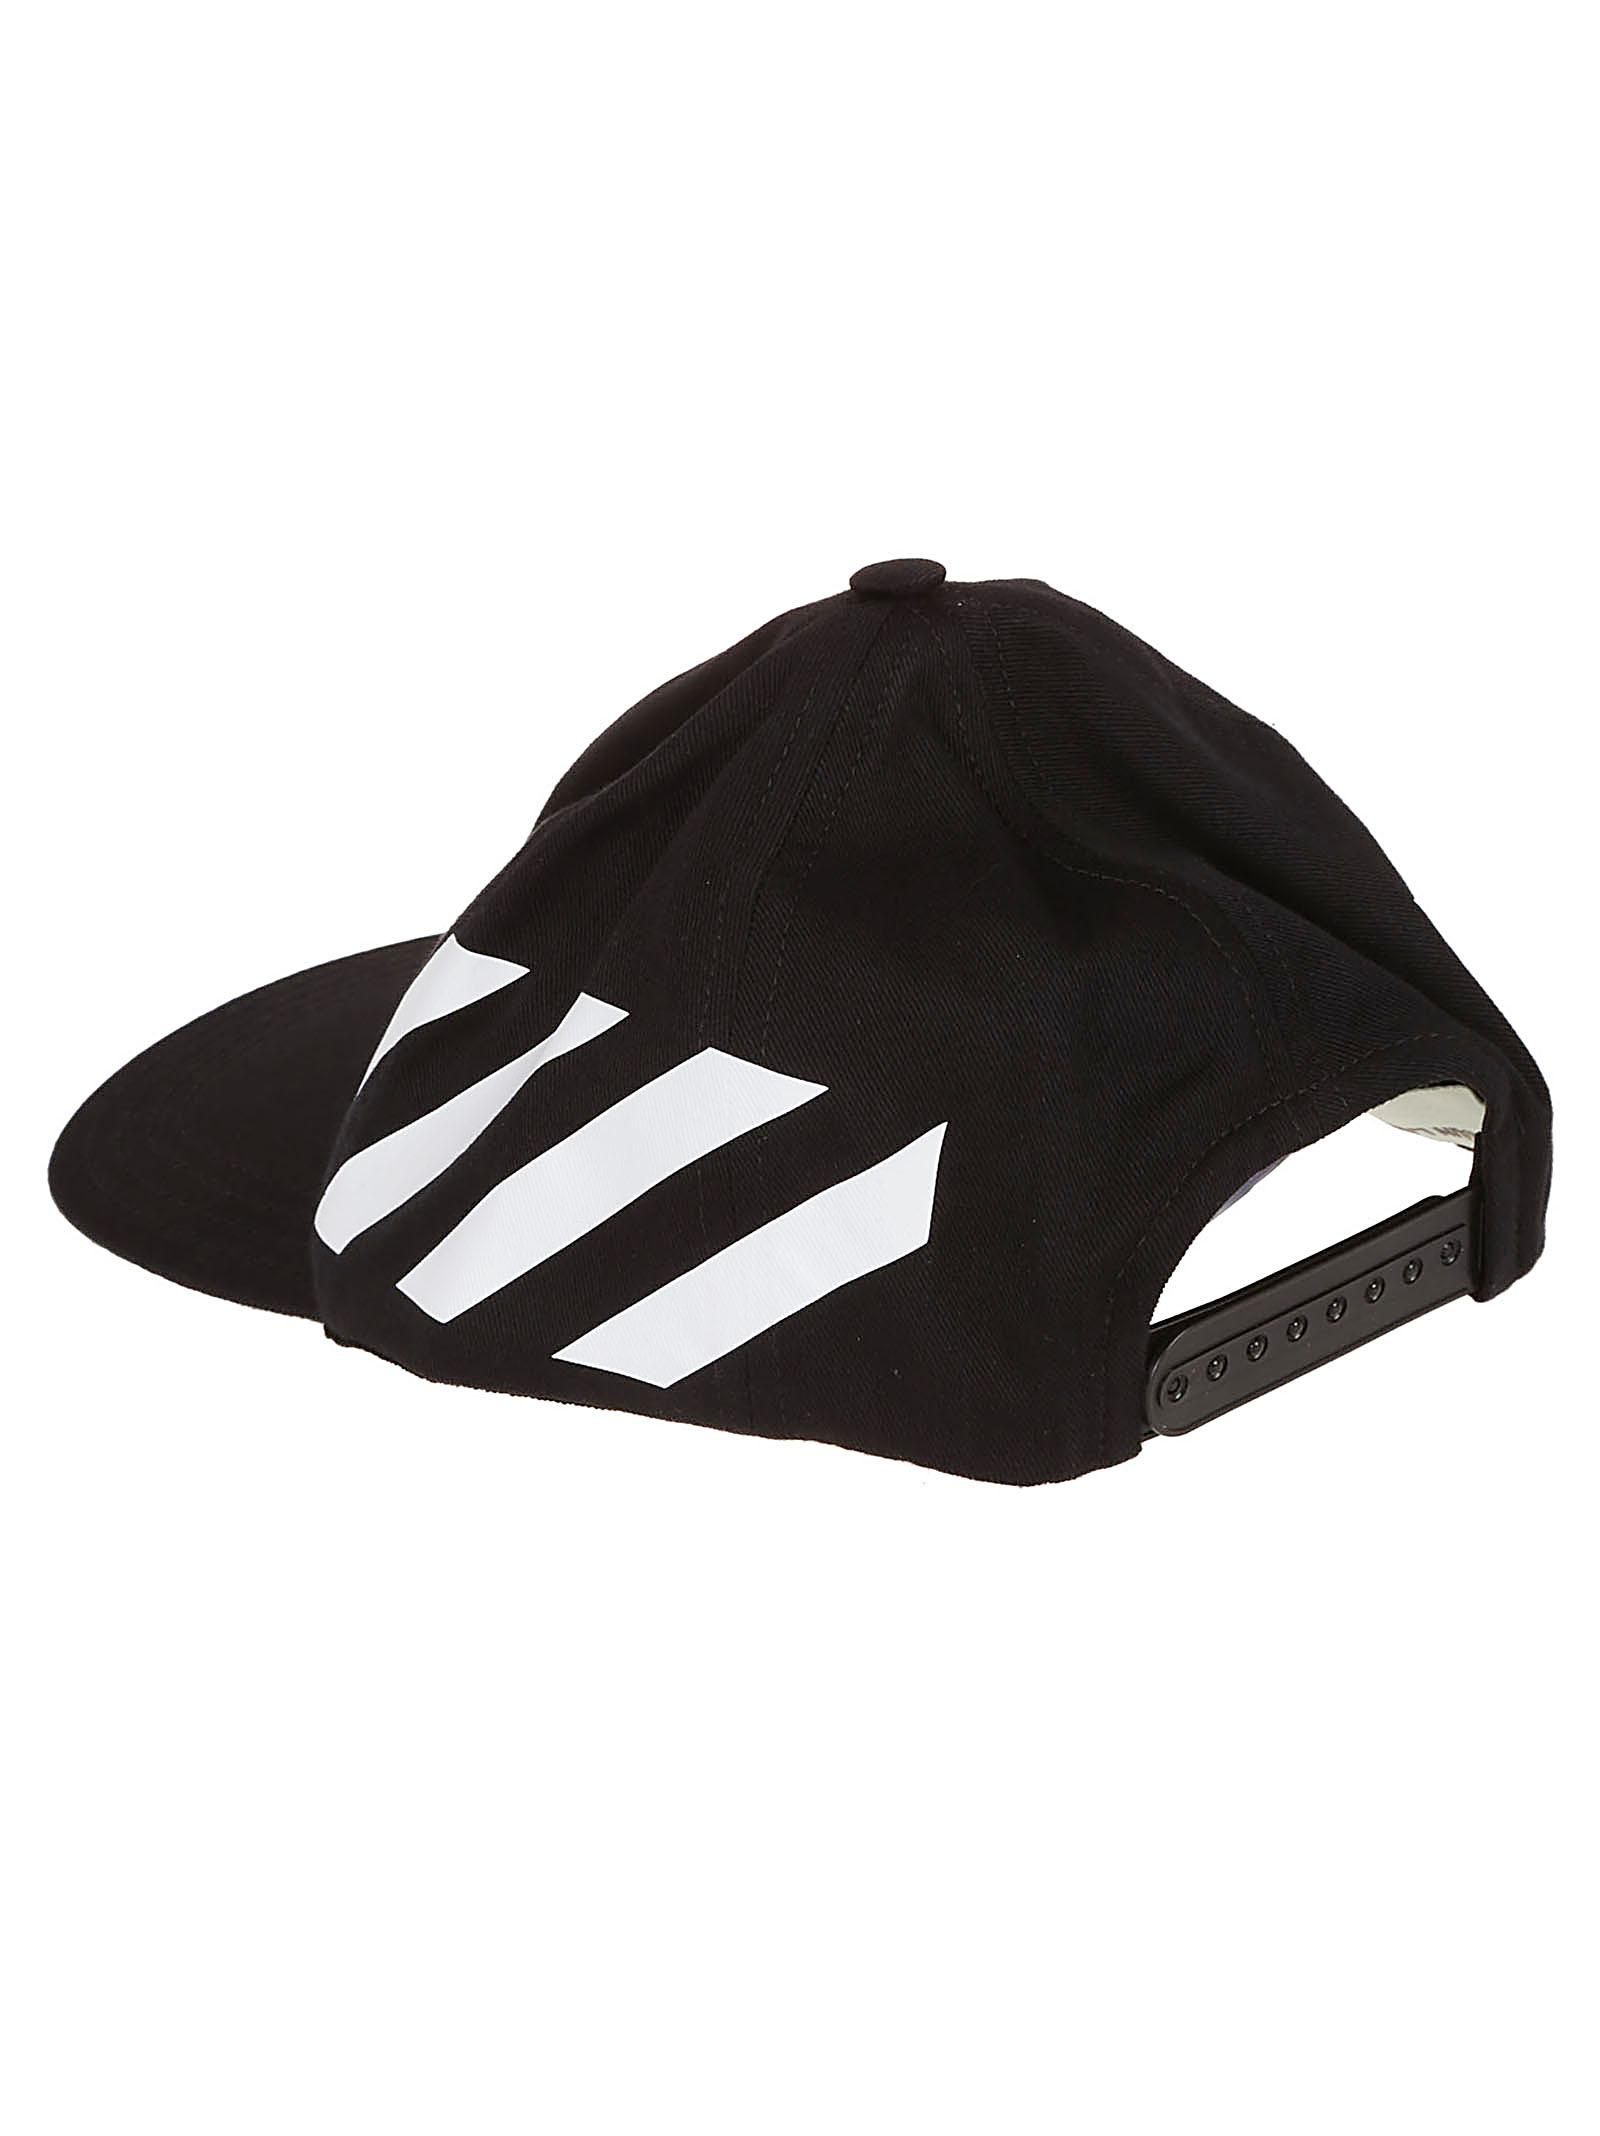 198b1dee384 Off-White c o Virgil Abloh - Black Baseball Cap for Men - Lyst. View  fullscreen